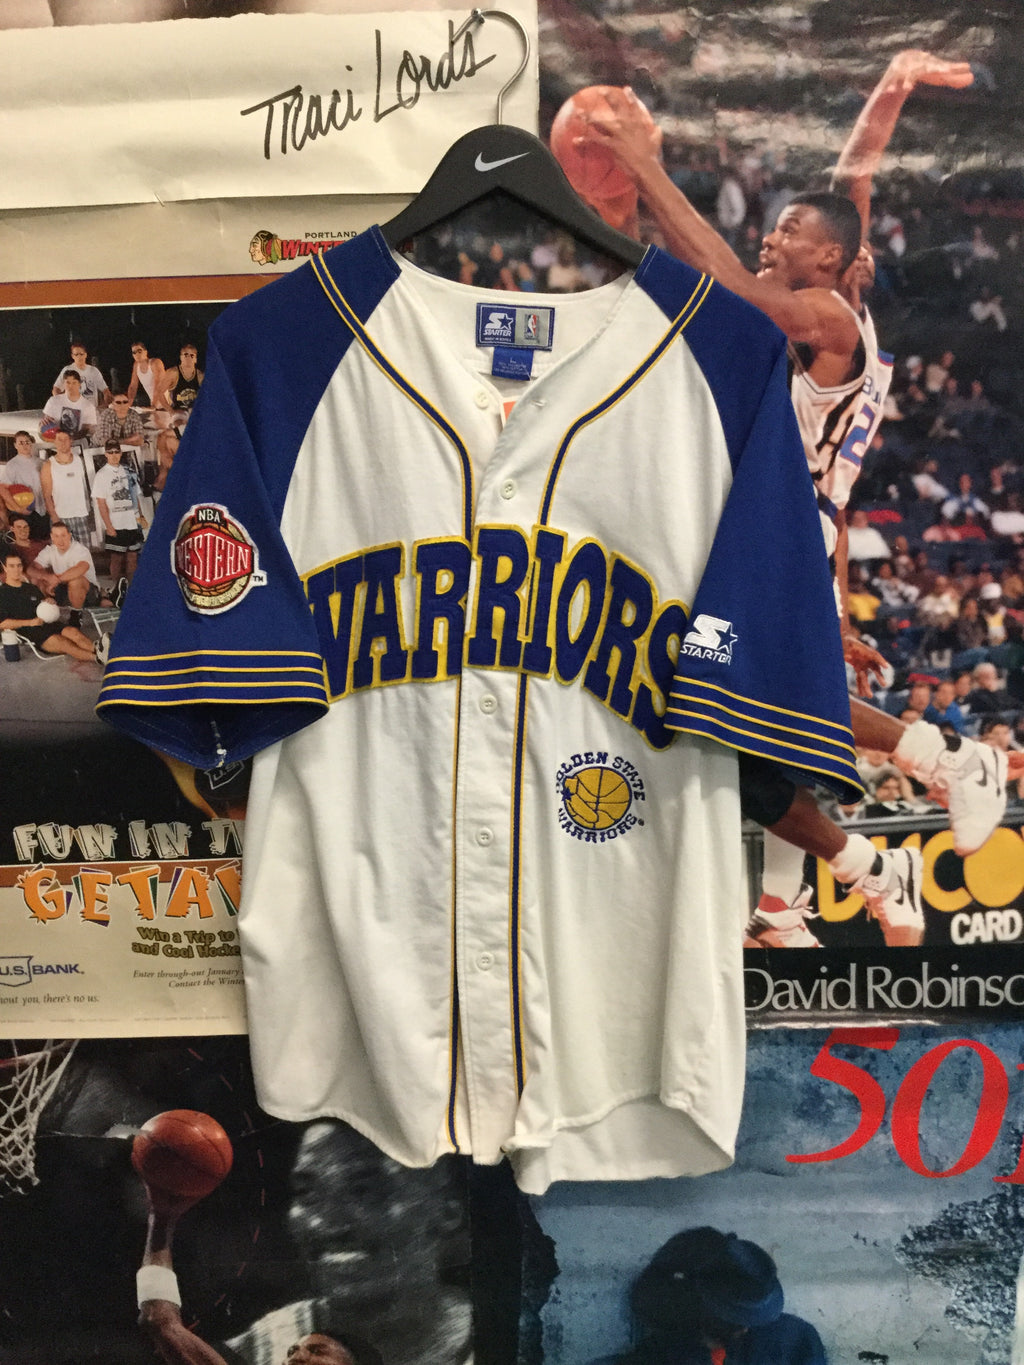 Starter Golden State Warriors Baseball Jersey Large - Decades of dope